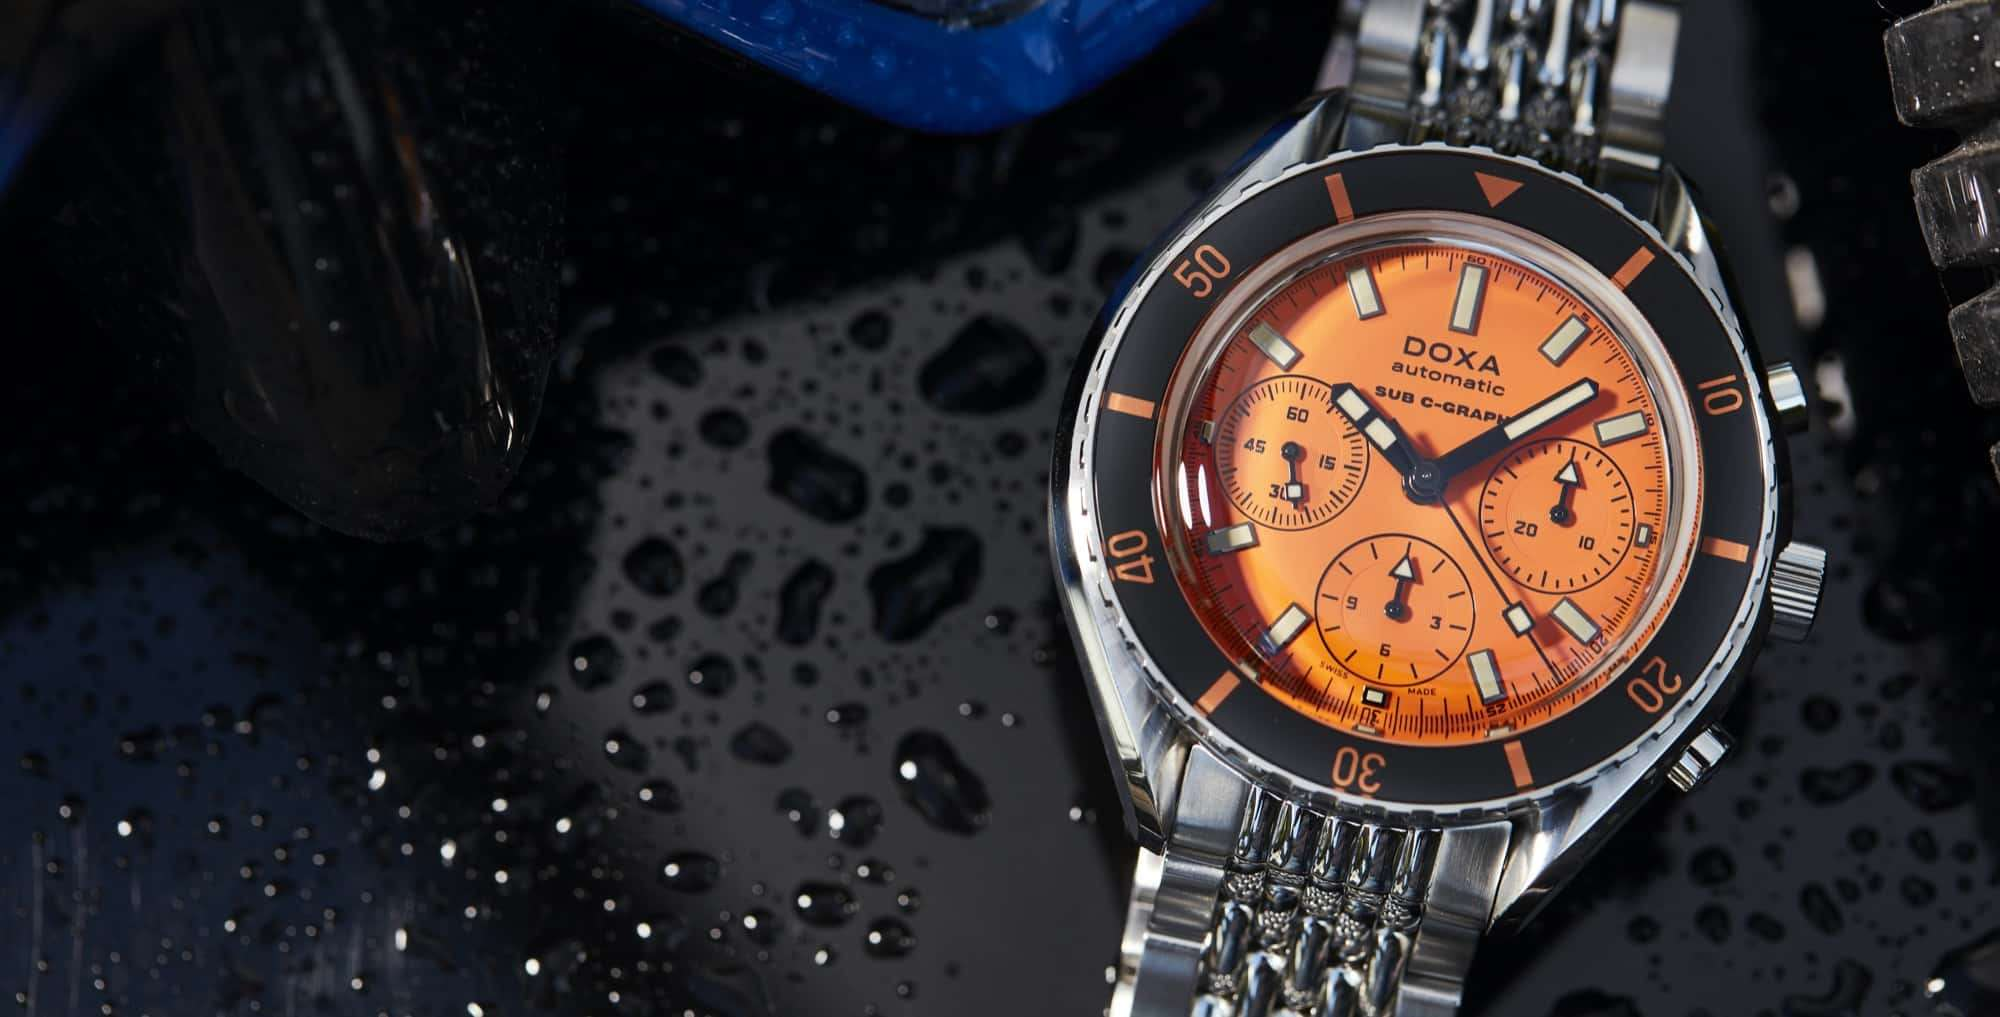 DOXA SUB 200 C-GRAPH – Swiss Time